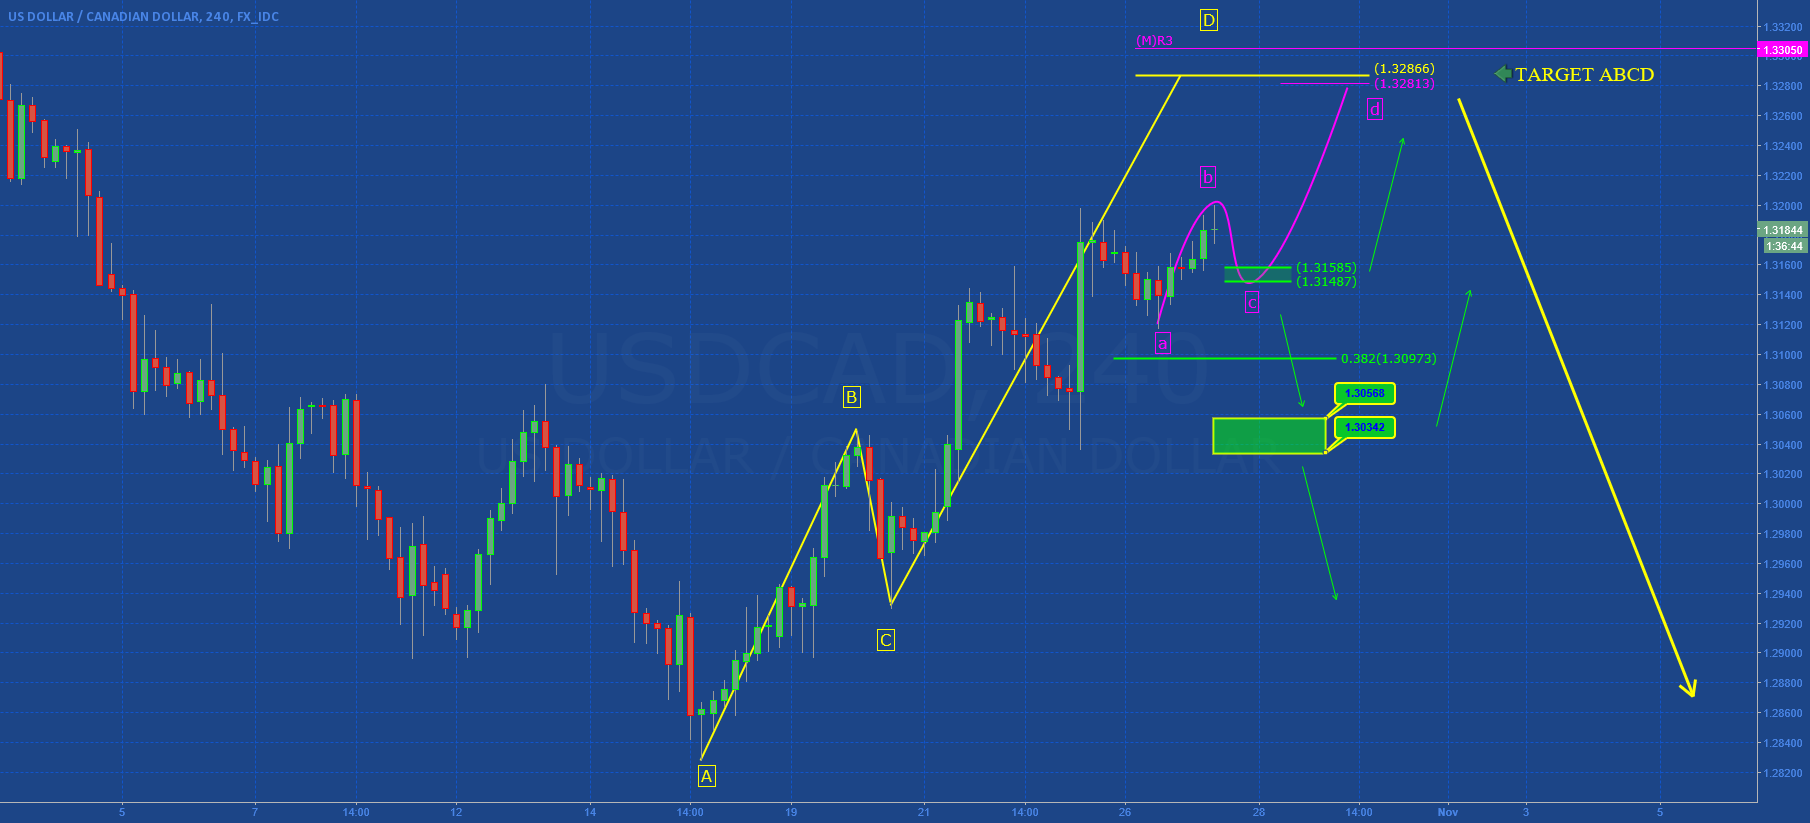 USDCAD: ABCD not complete (Part 2)